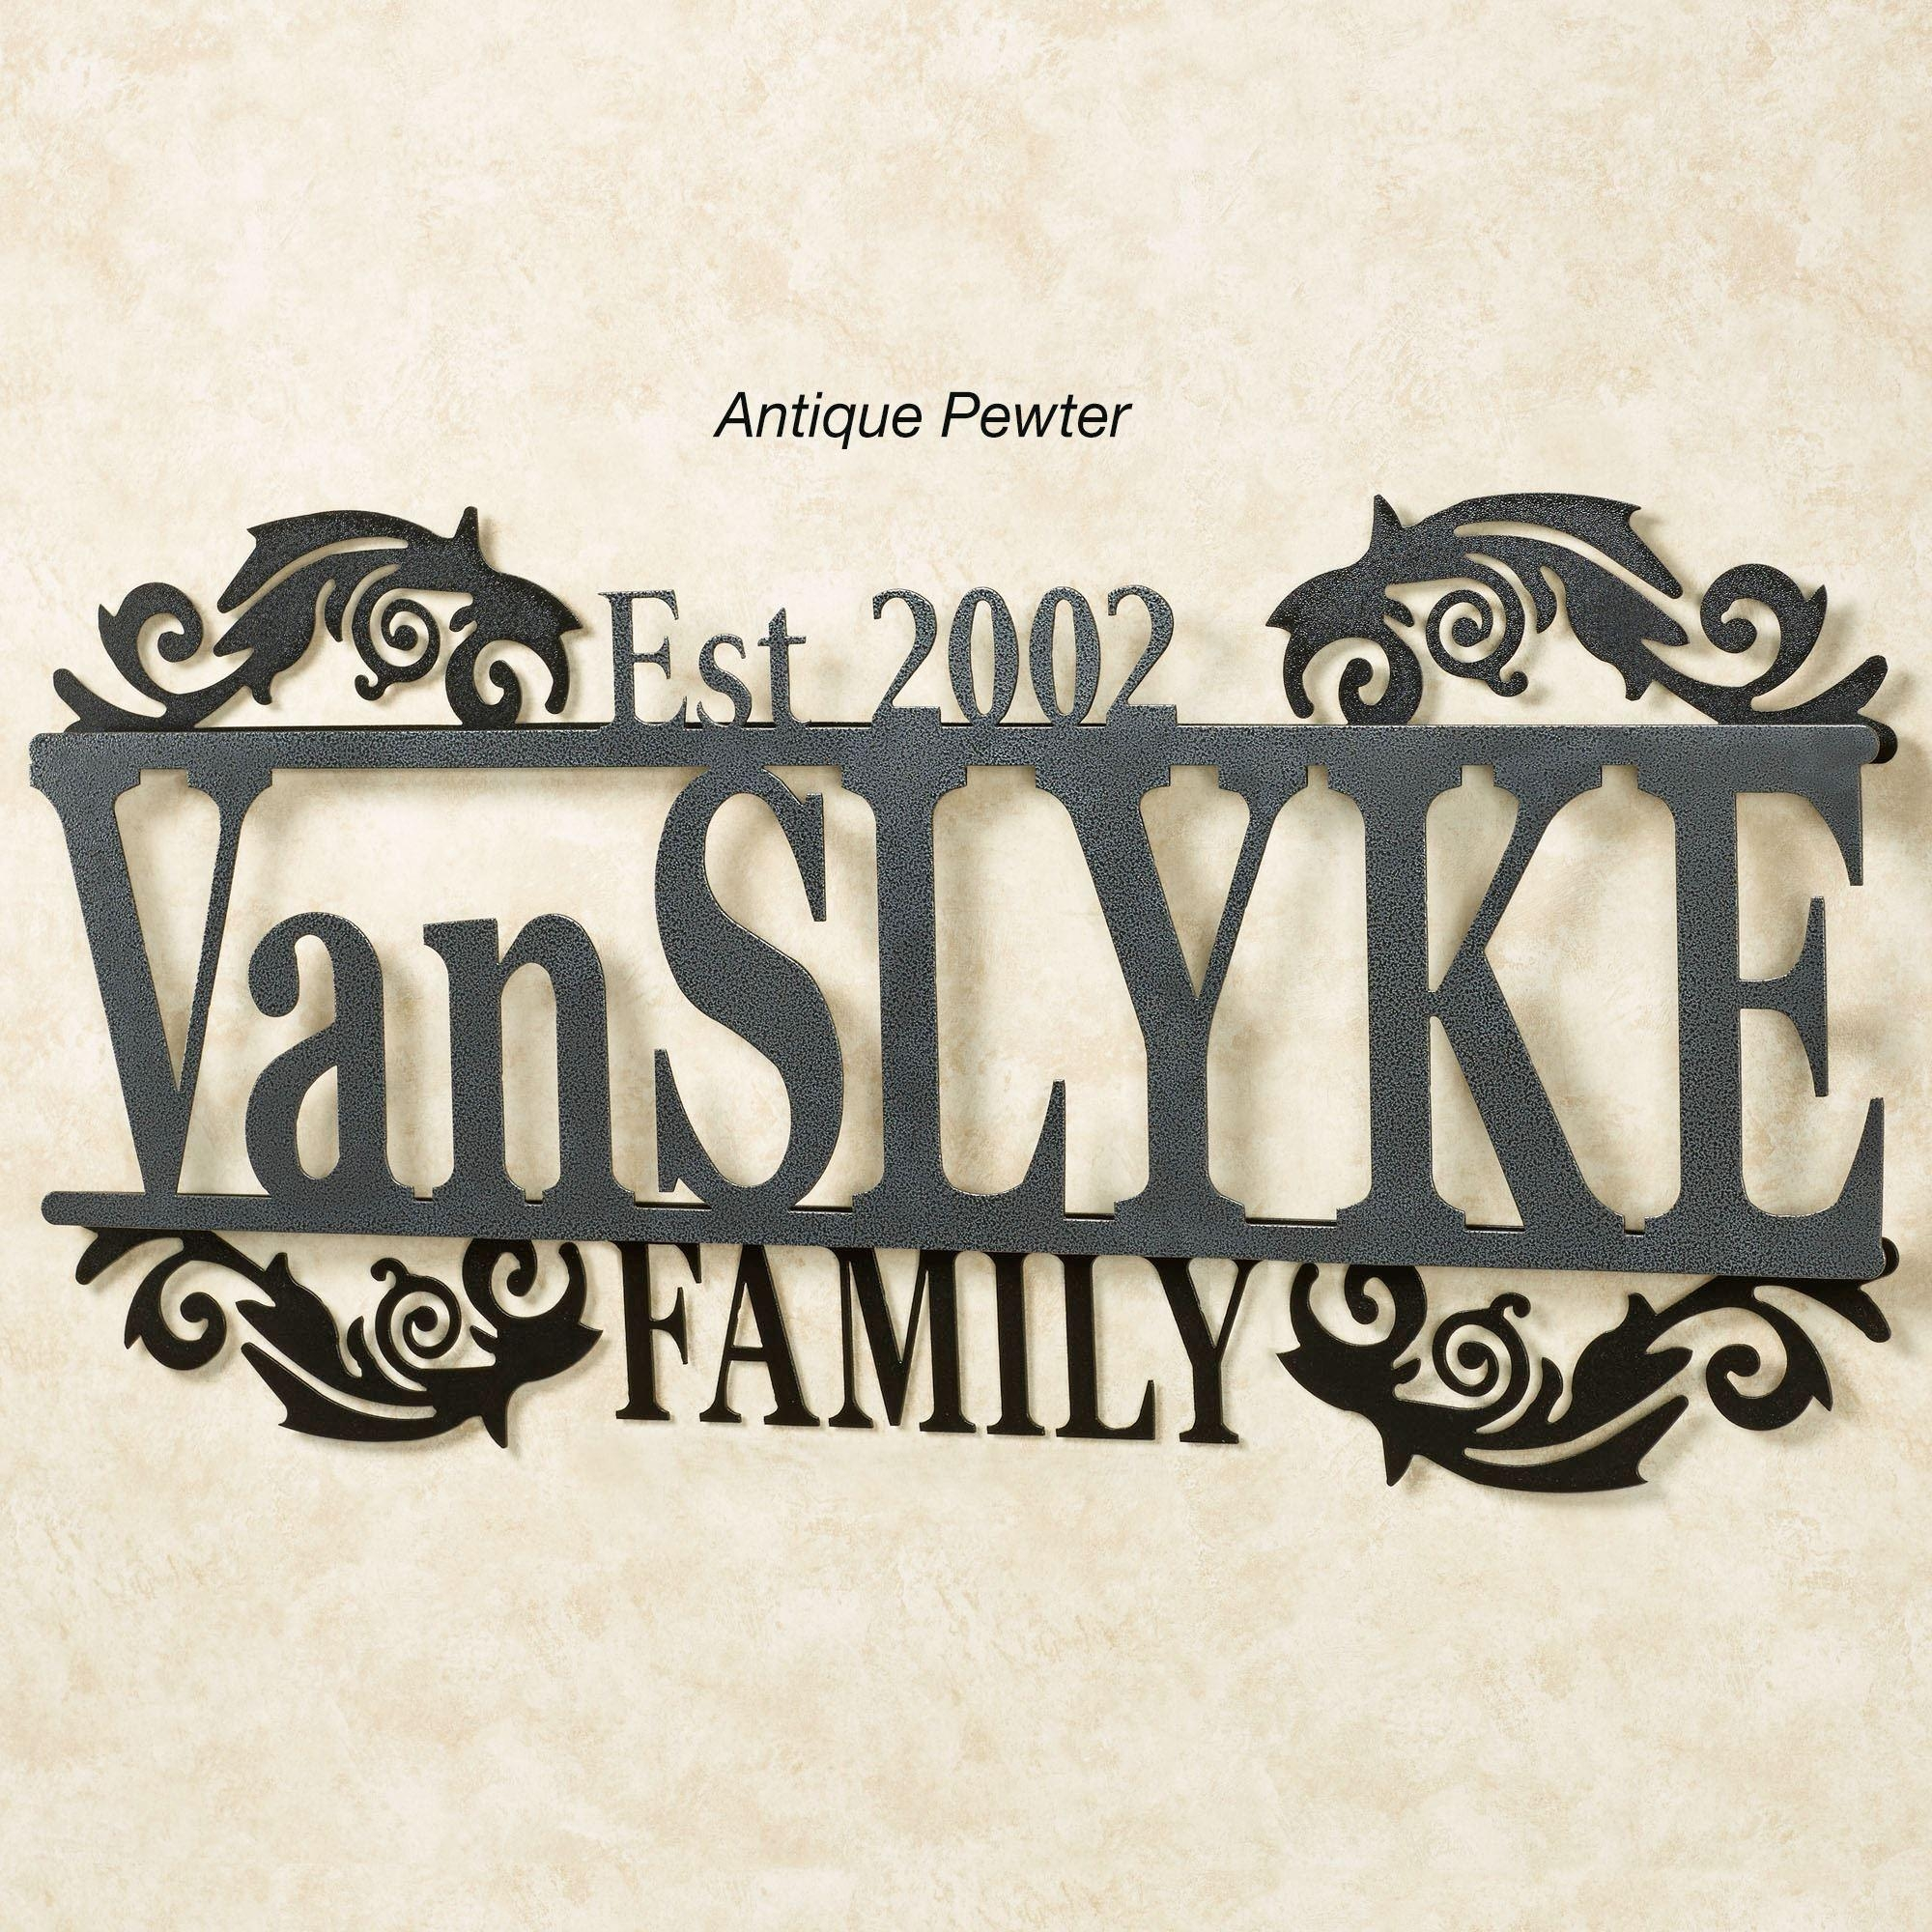 Legacy Family Established Year Personalized Metal Wall Art Sign Intended For Personalized Family Wall Art (View 8 of 20)